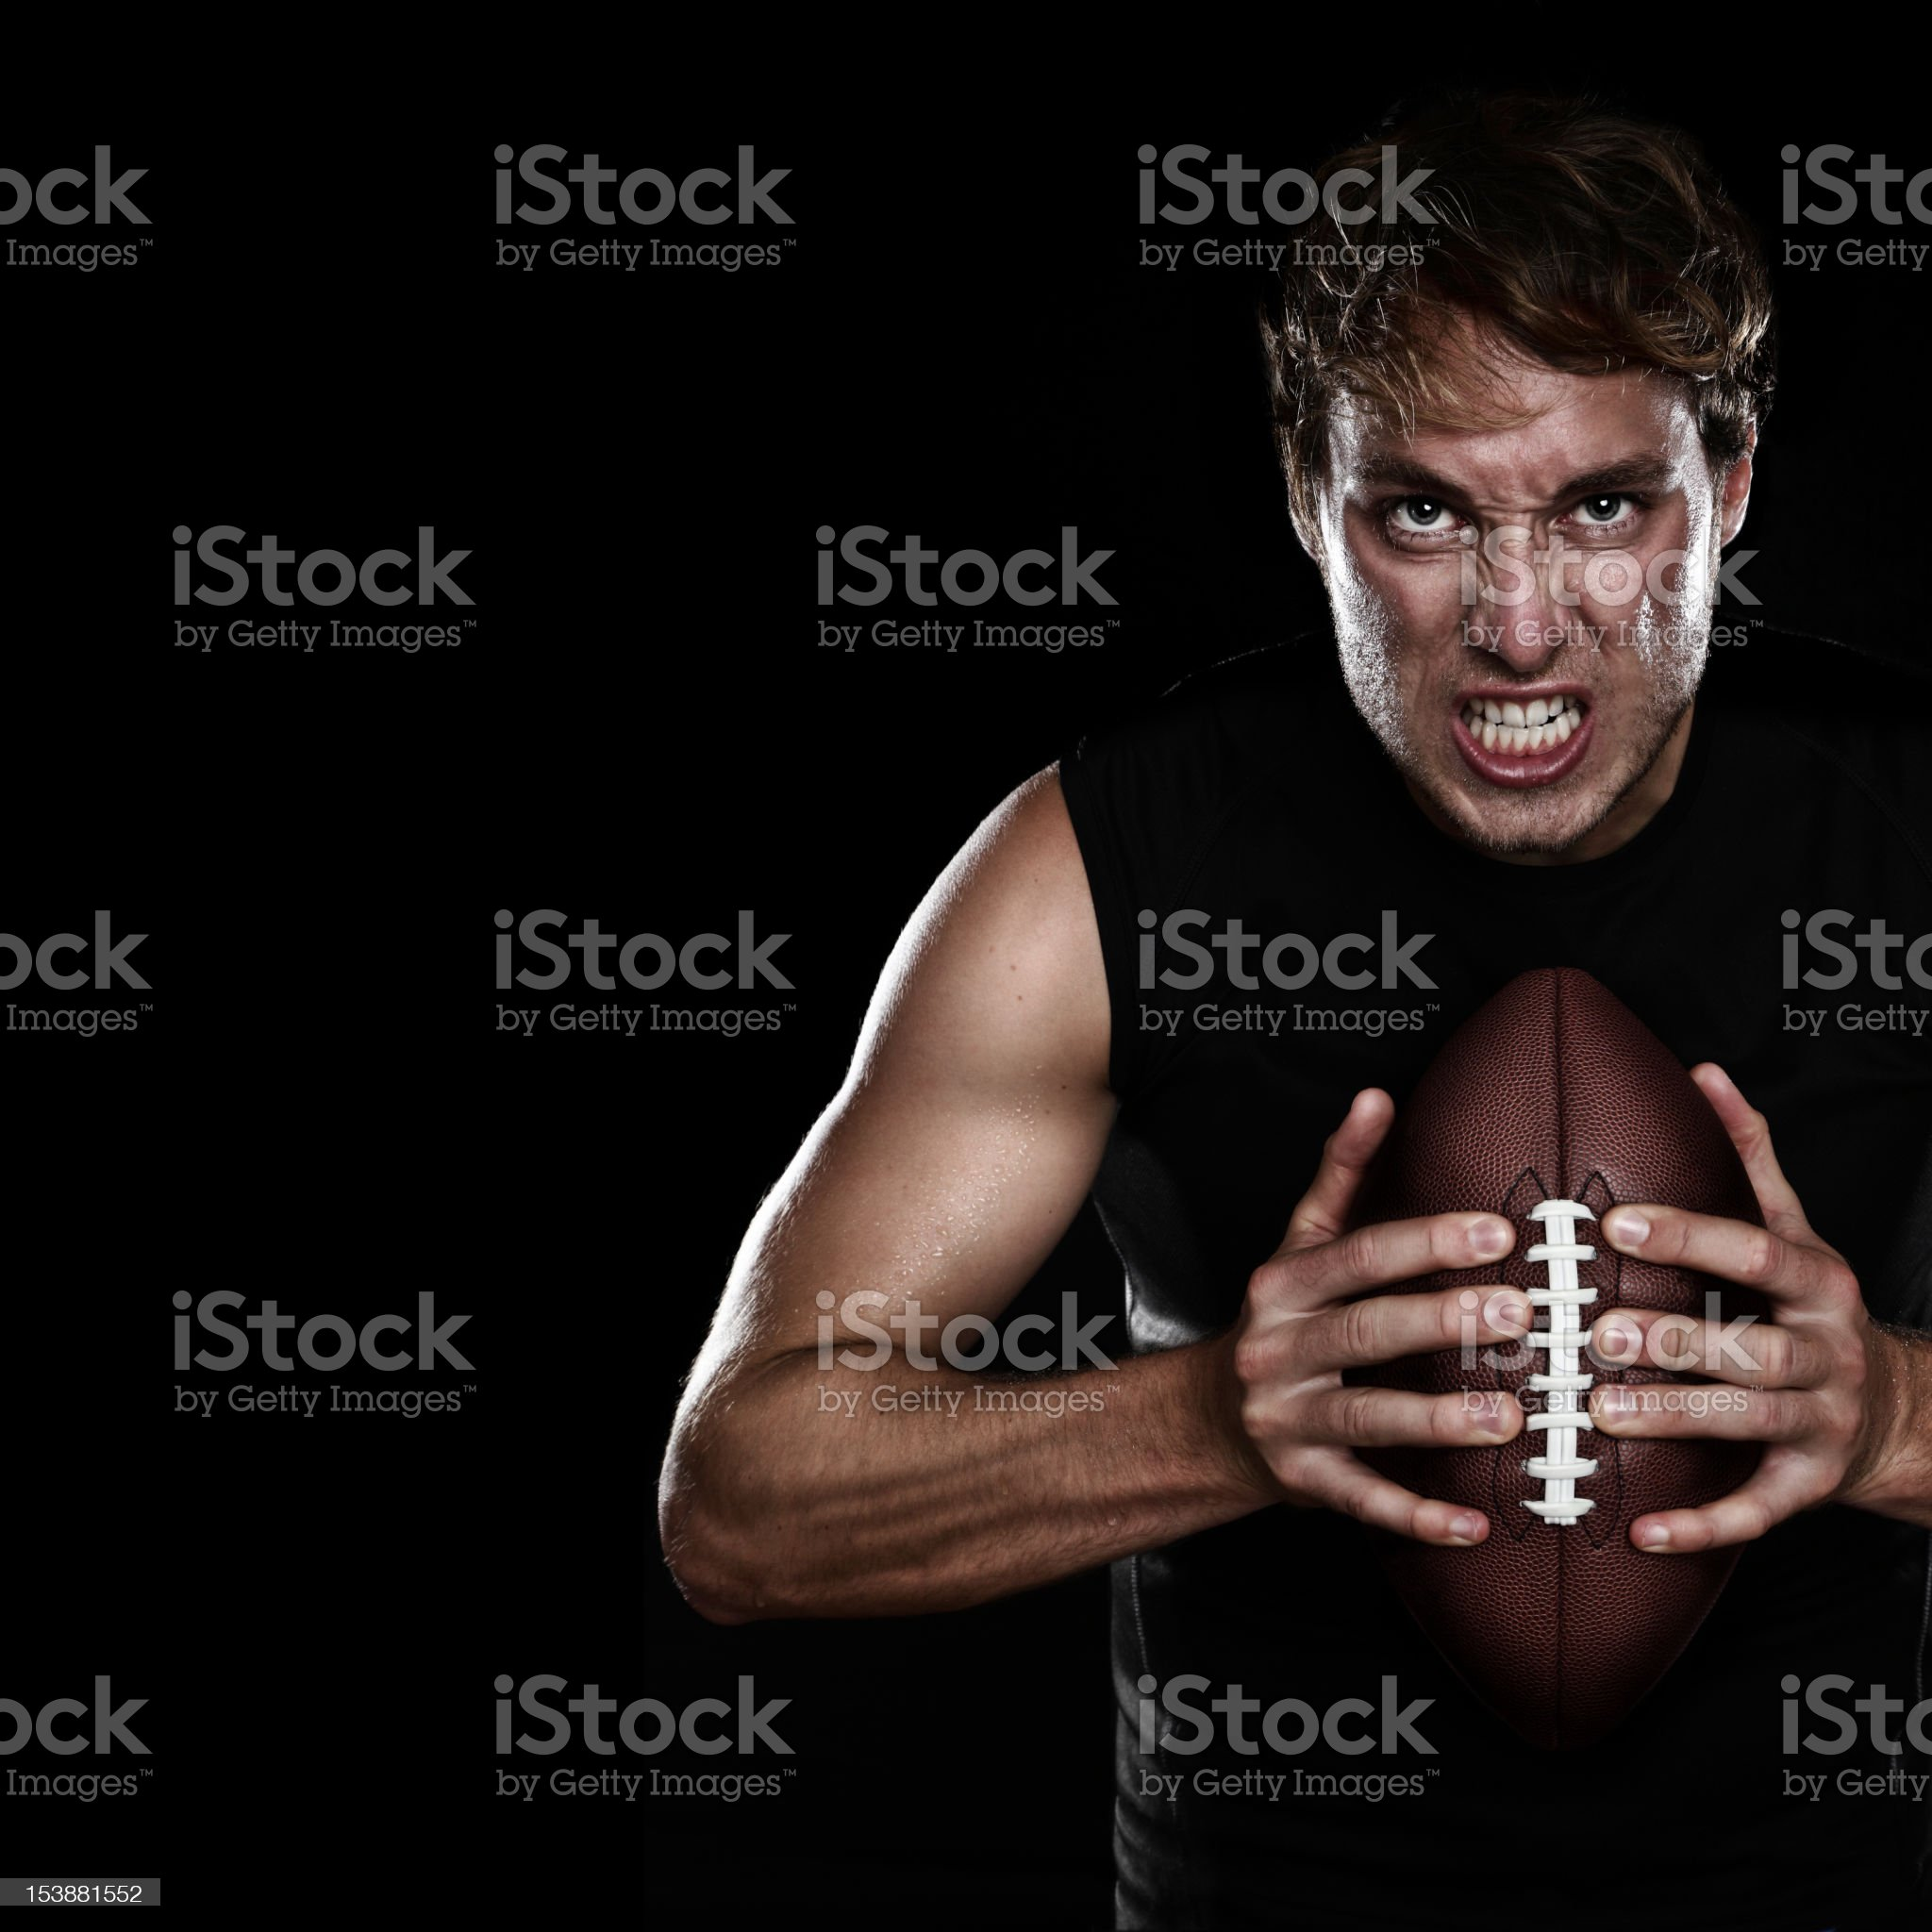 Muscular man holding football against black background royalty-free stock photo